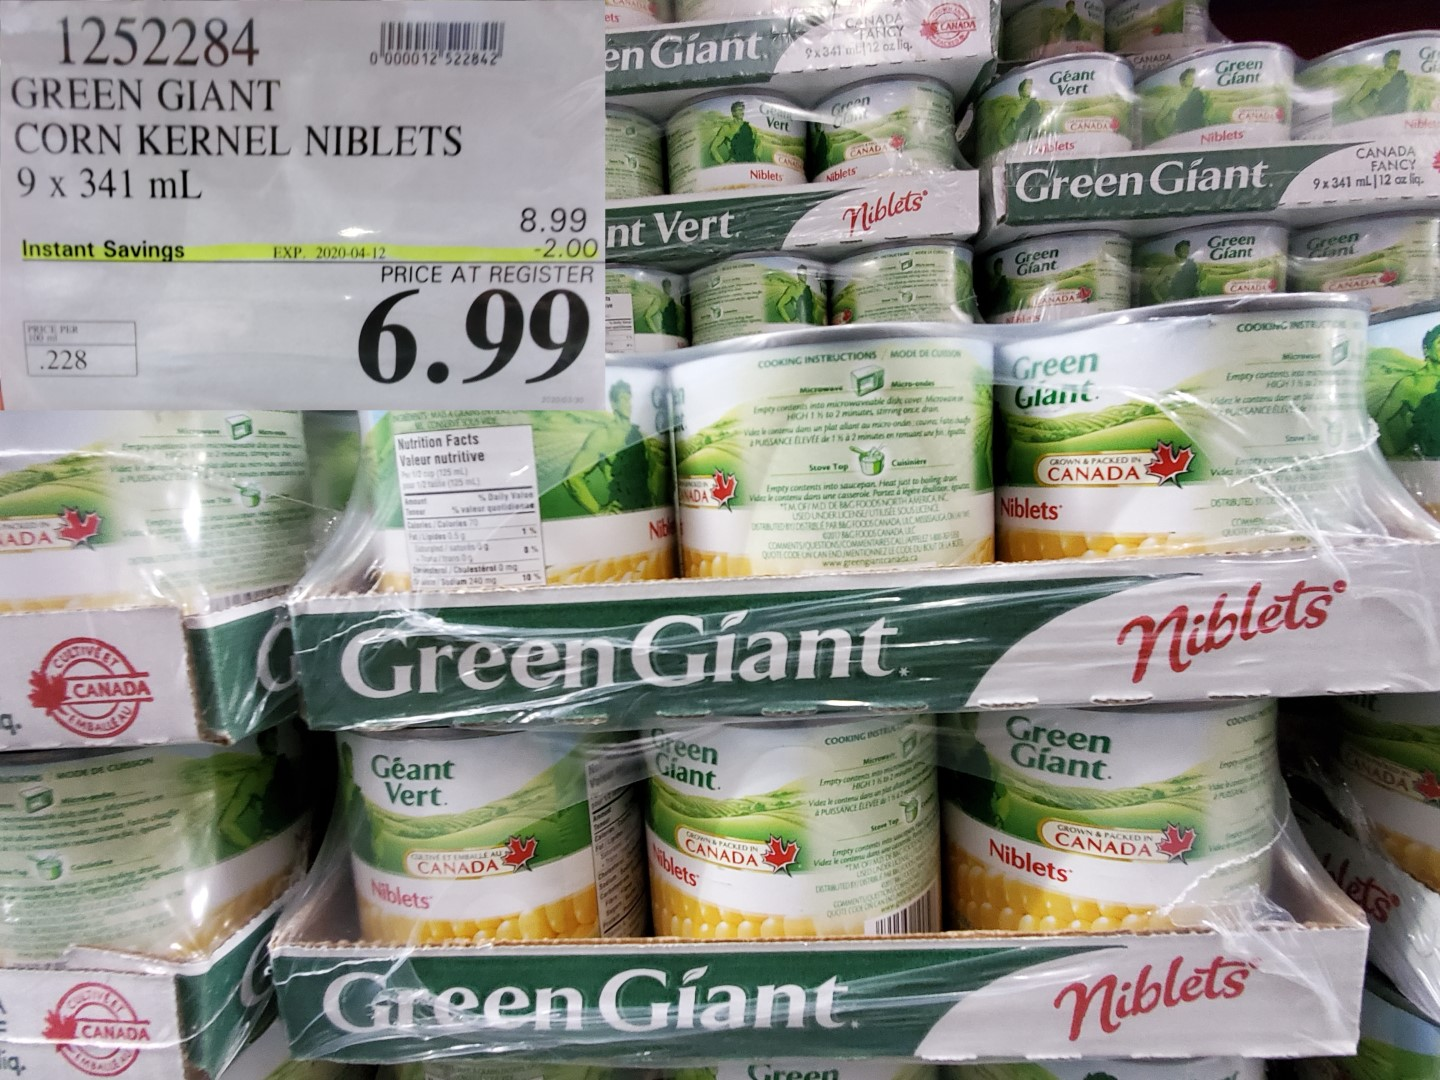 green giant nibblets